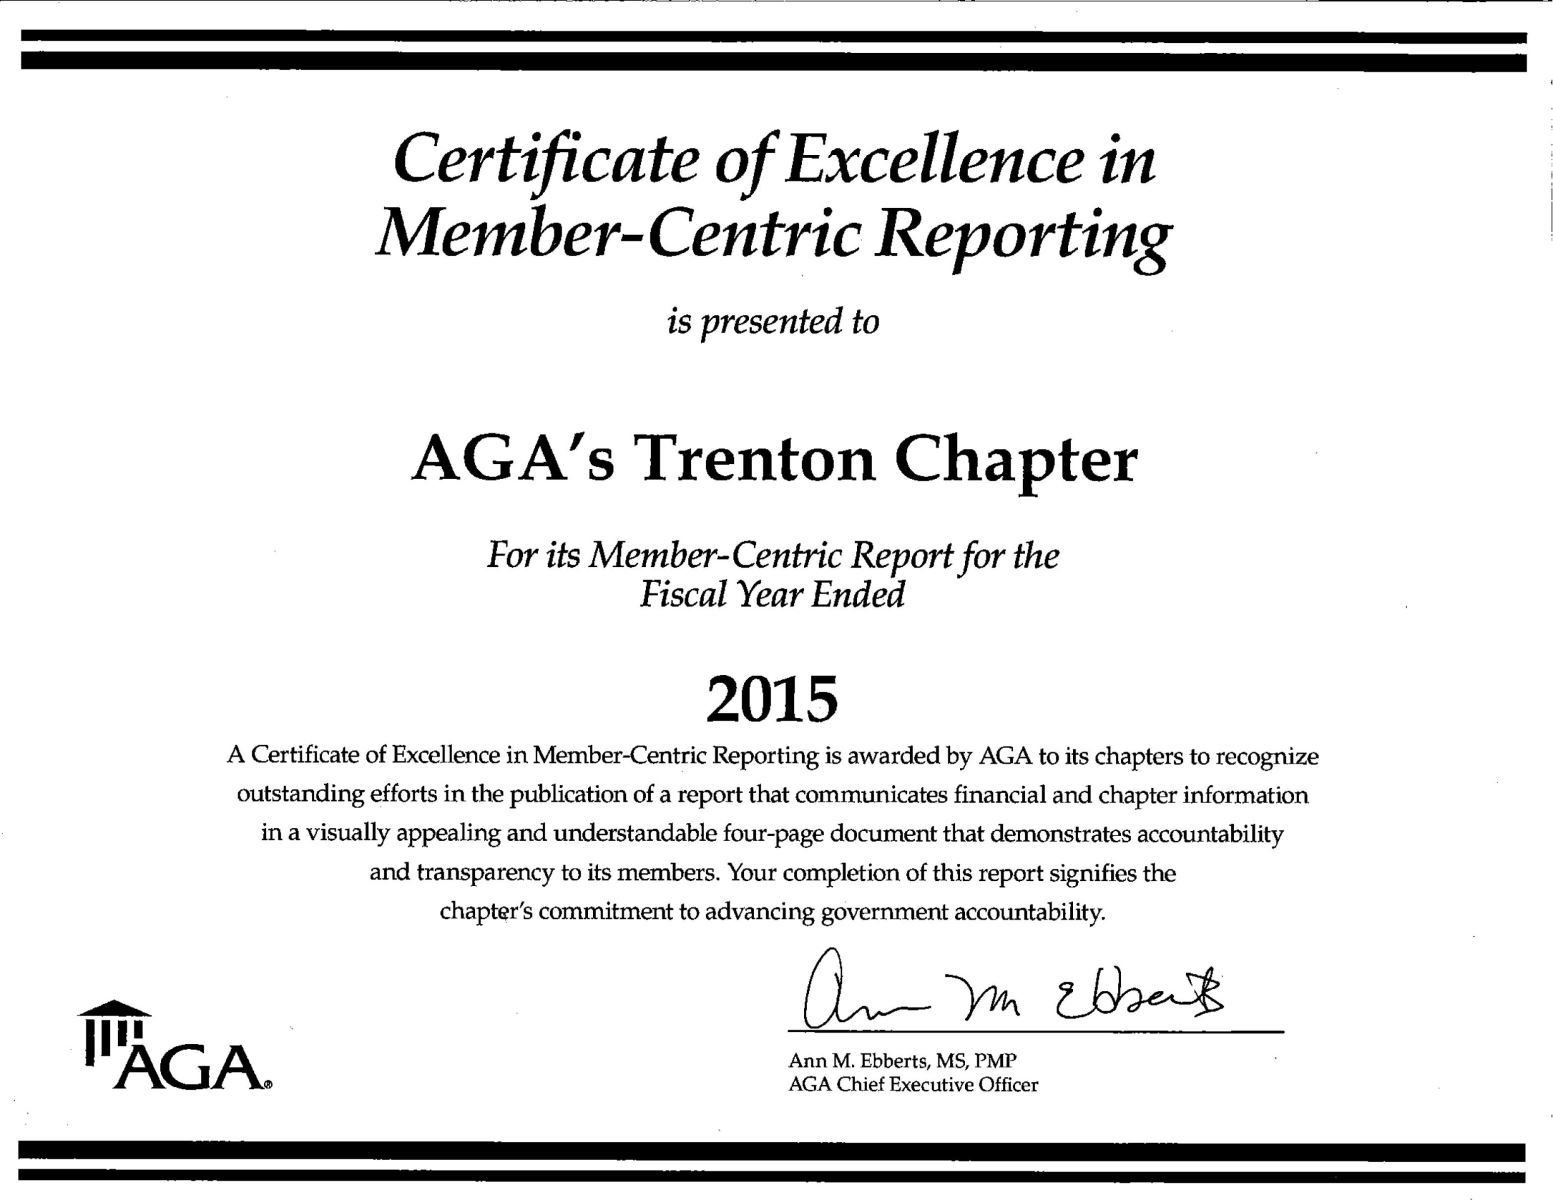 AGA Trenton Chapter Certificate of Excellence in Member-Centric Reporting 2015